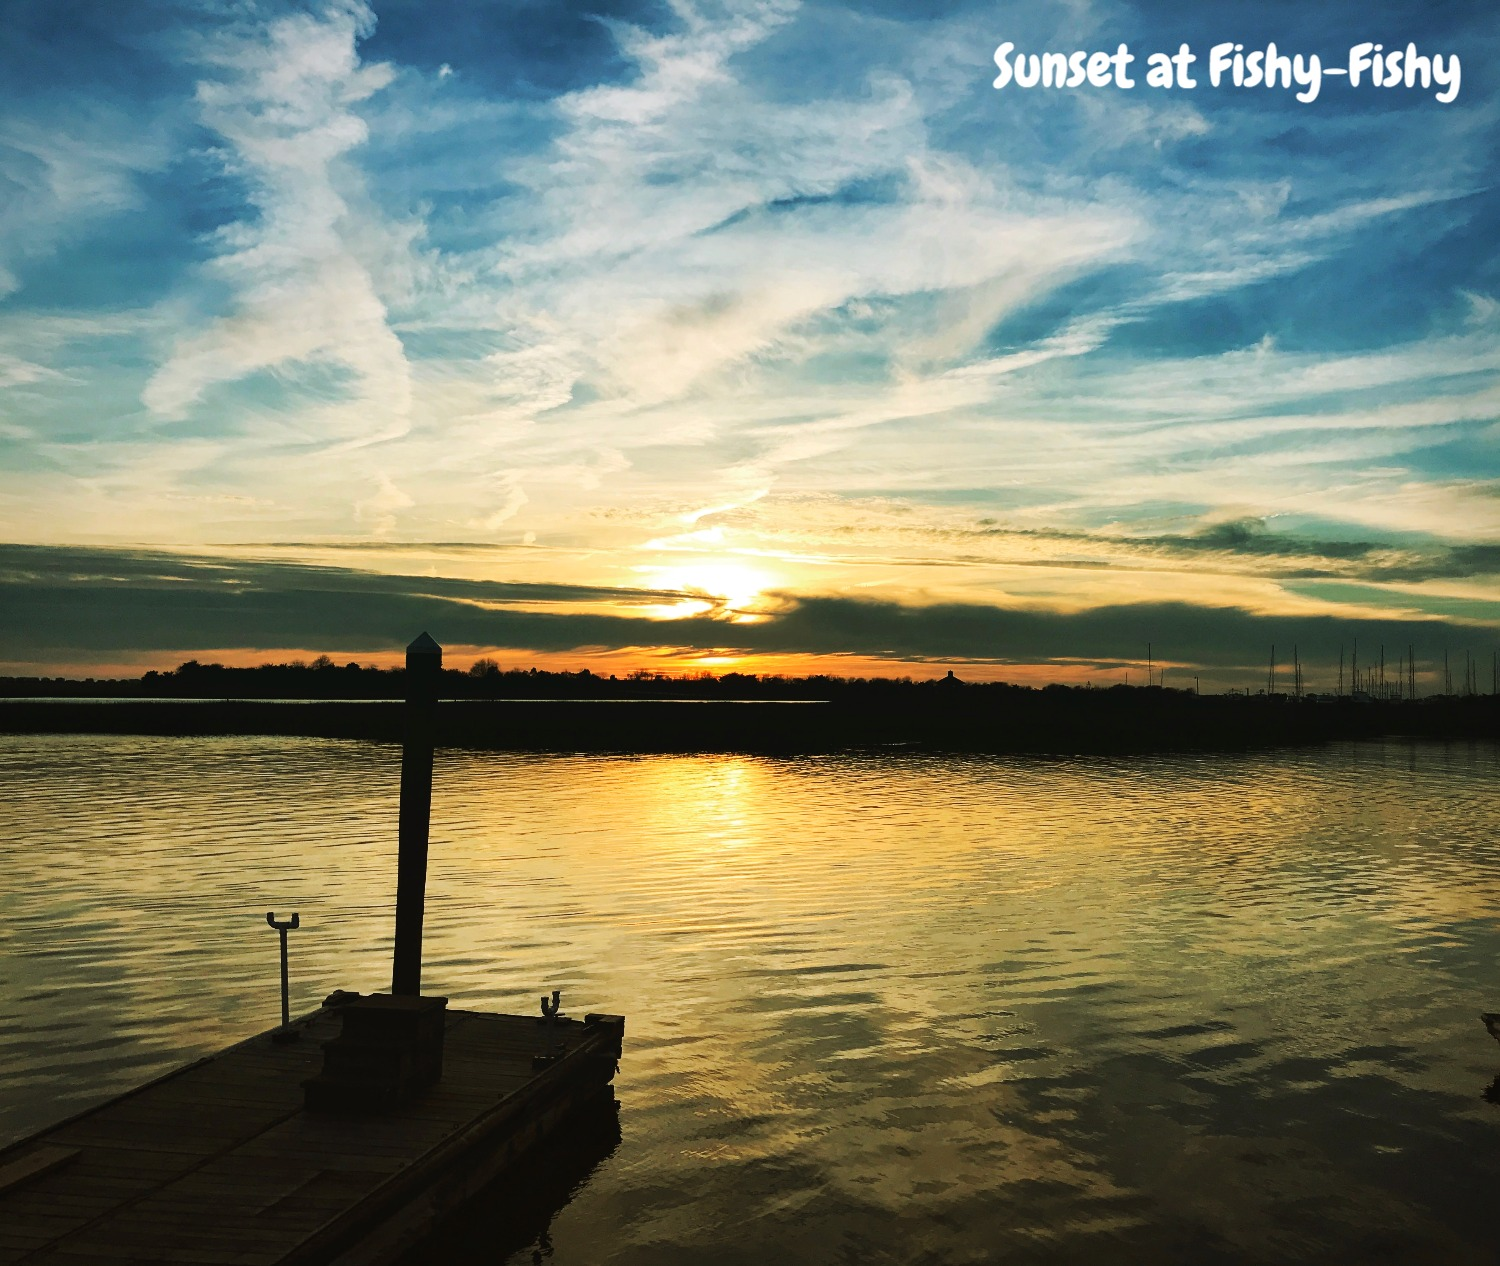 another sunset fishy fishy cafe southport nc restaurant on the water after cash mob